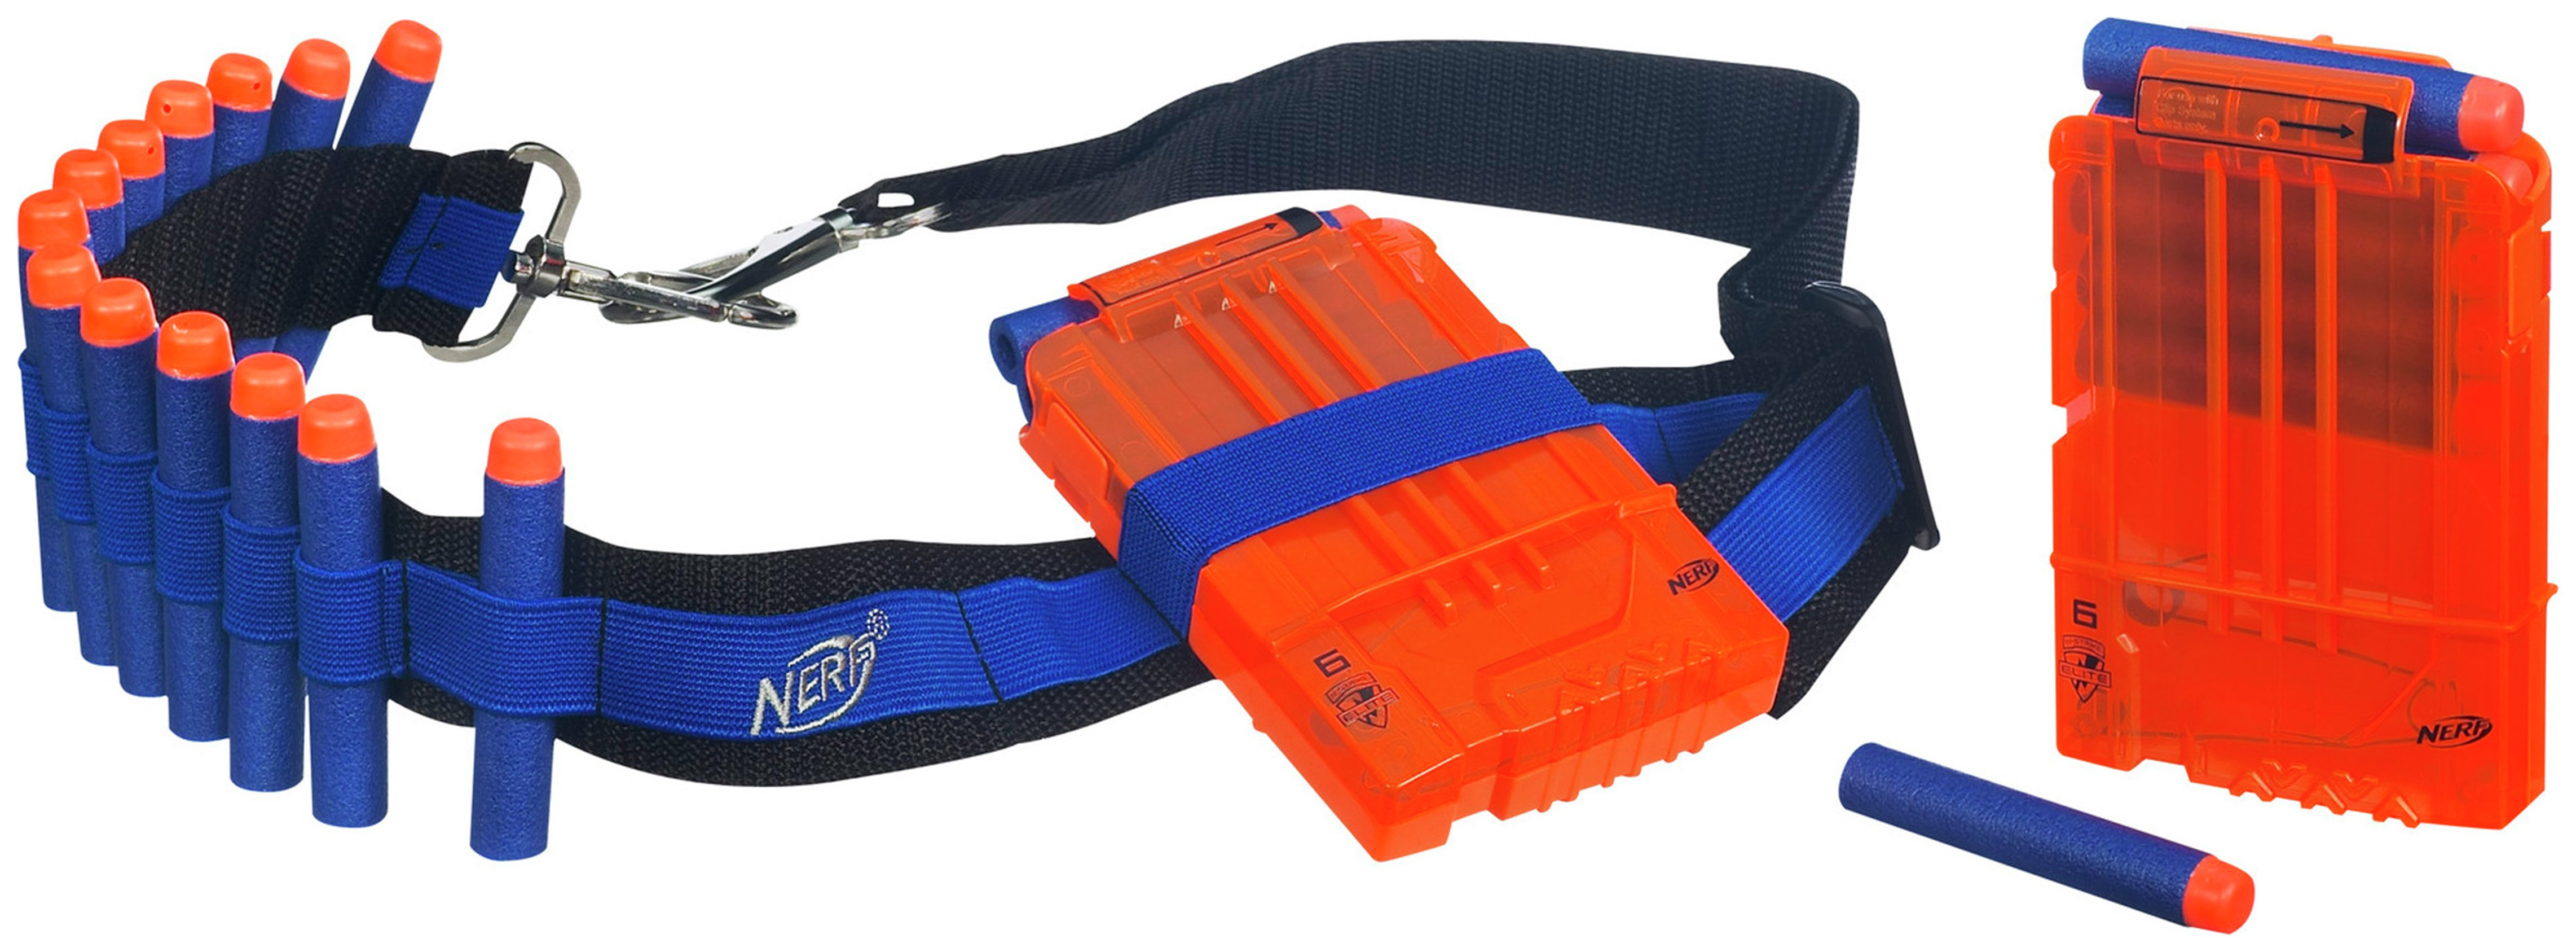 Nerf N-Strike Elite Bandolier Kit.